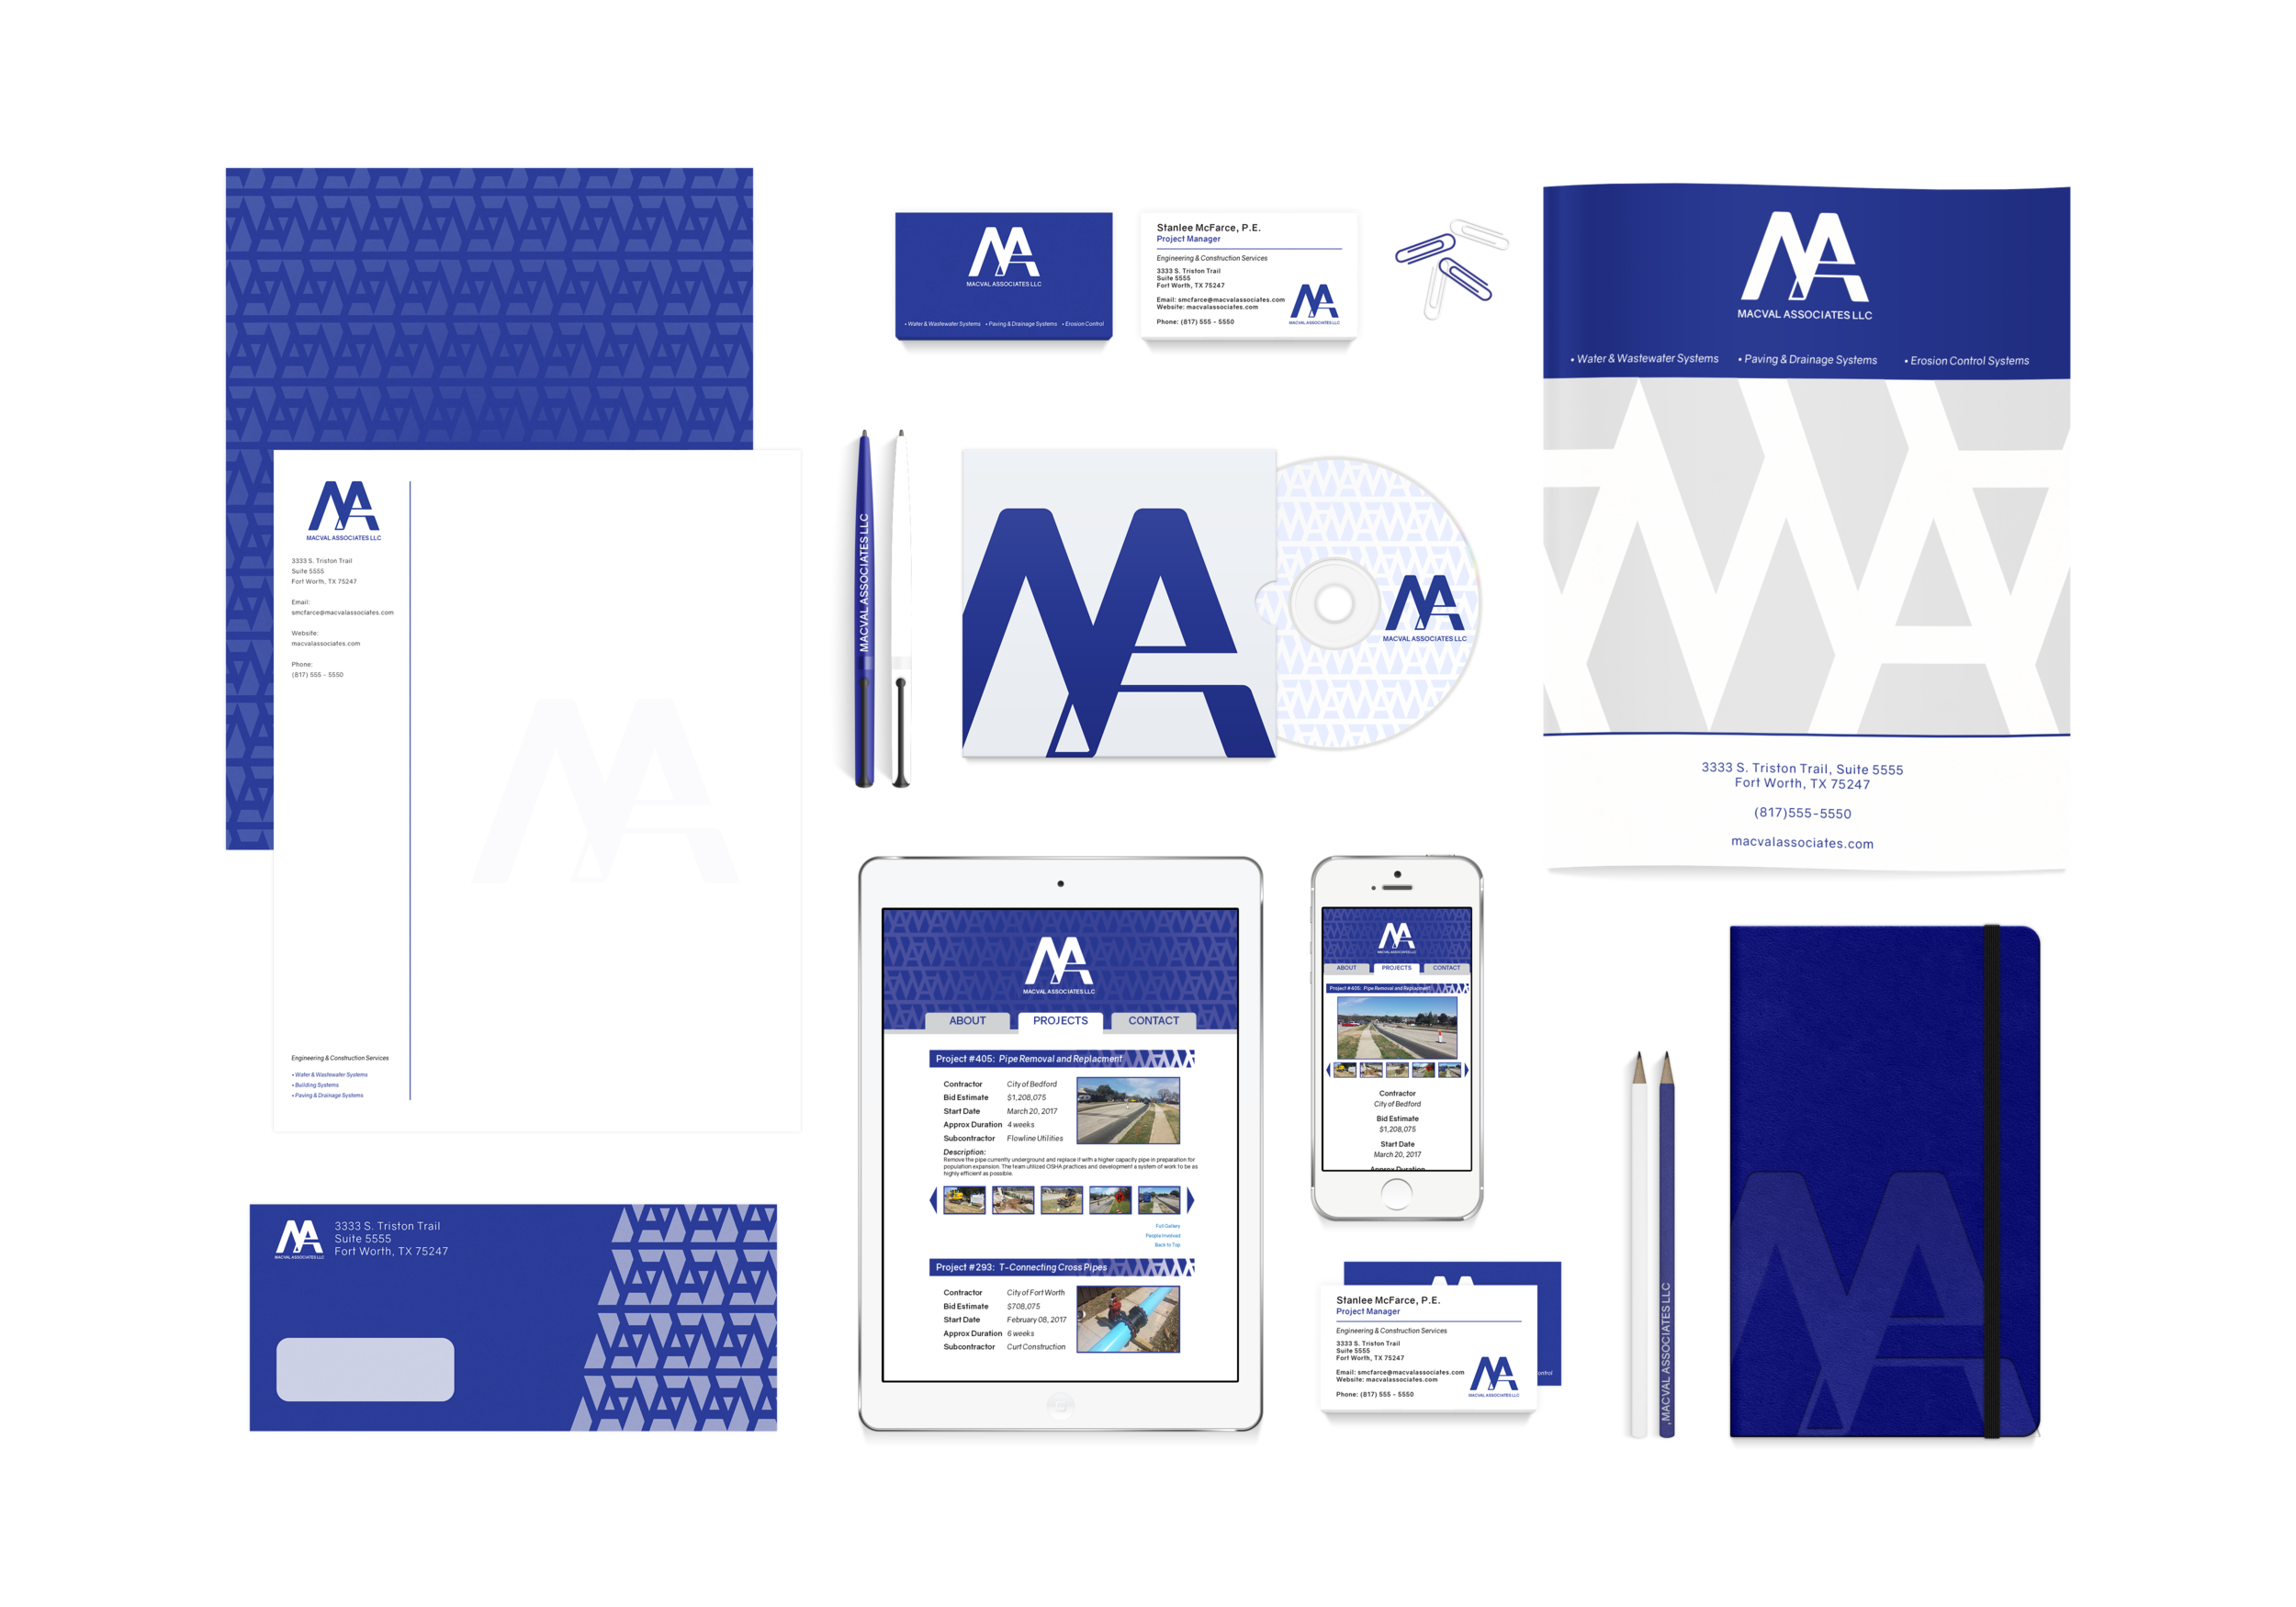 Stationary Sets & Brand Identity Design - Do you have an idea that you need to put in a digital or online format? We can develop a set of stationary (business cards, letterheads, ephemera)or brand identity assets to give your business that extra-professional feel.